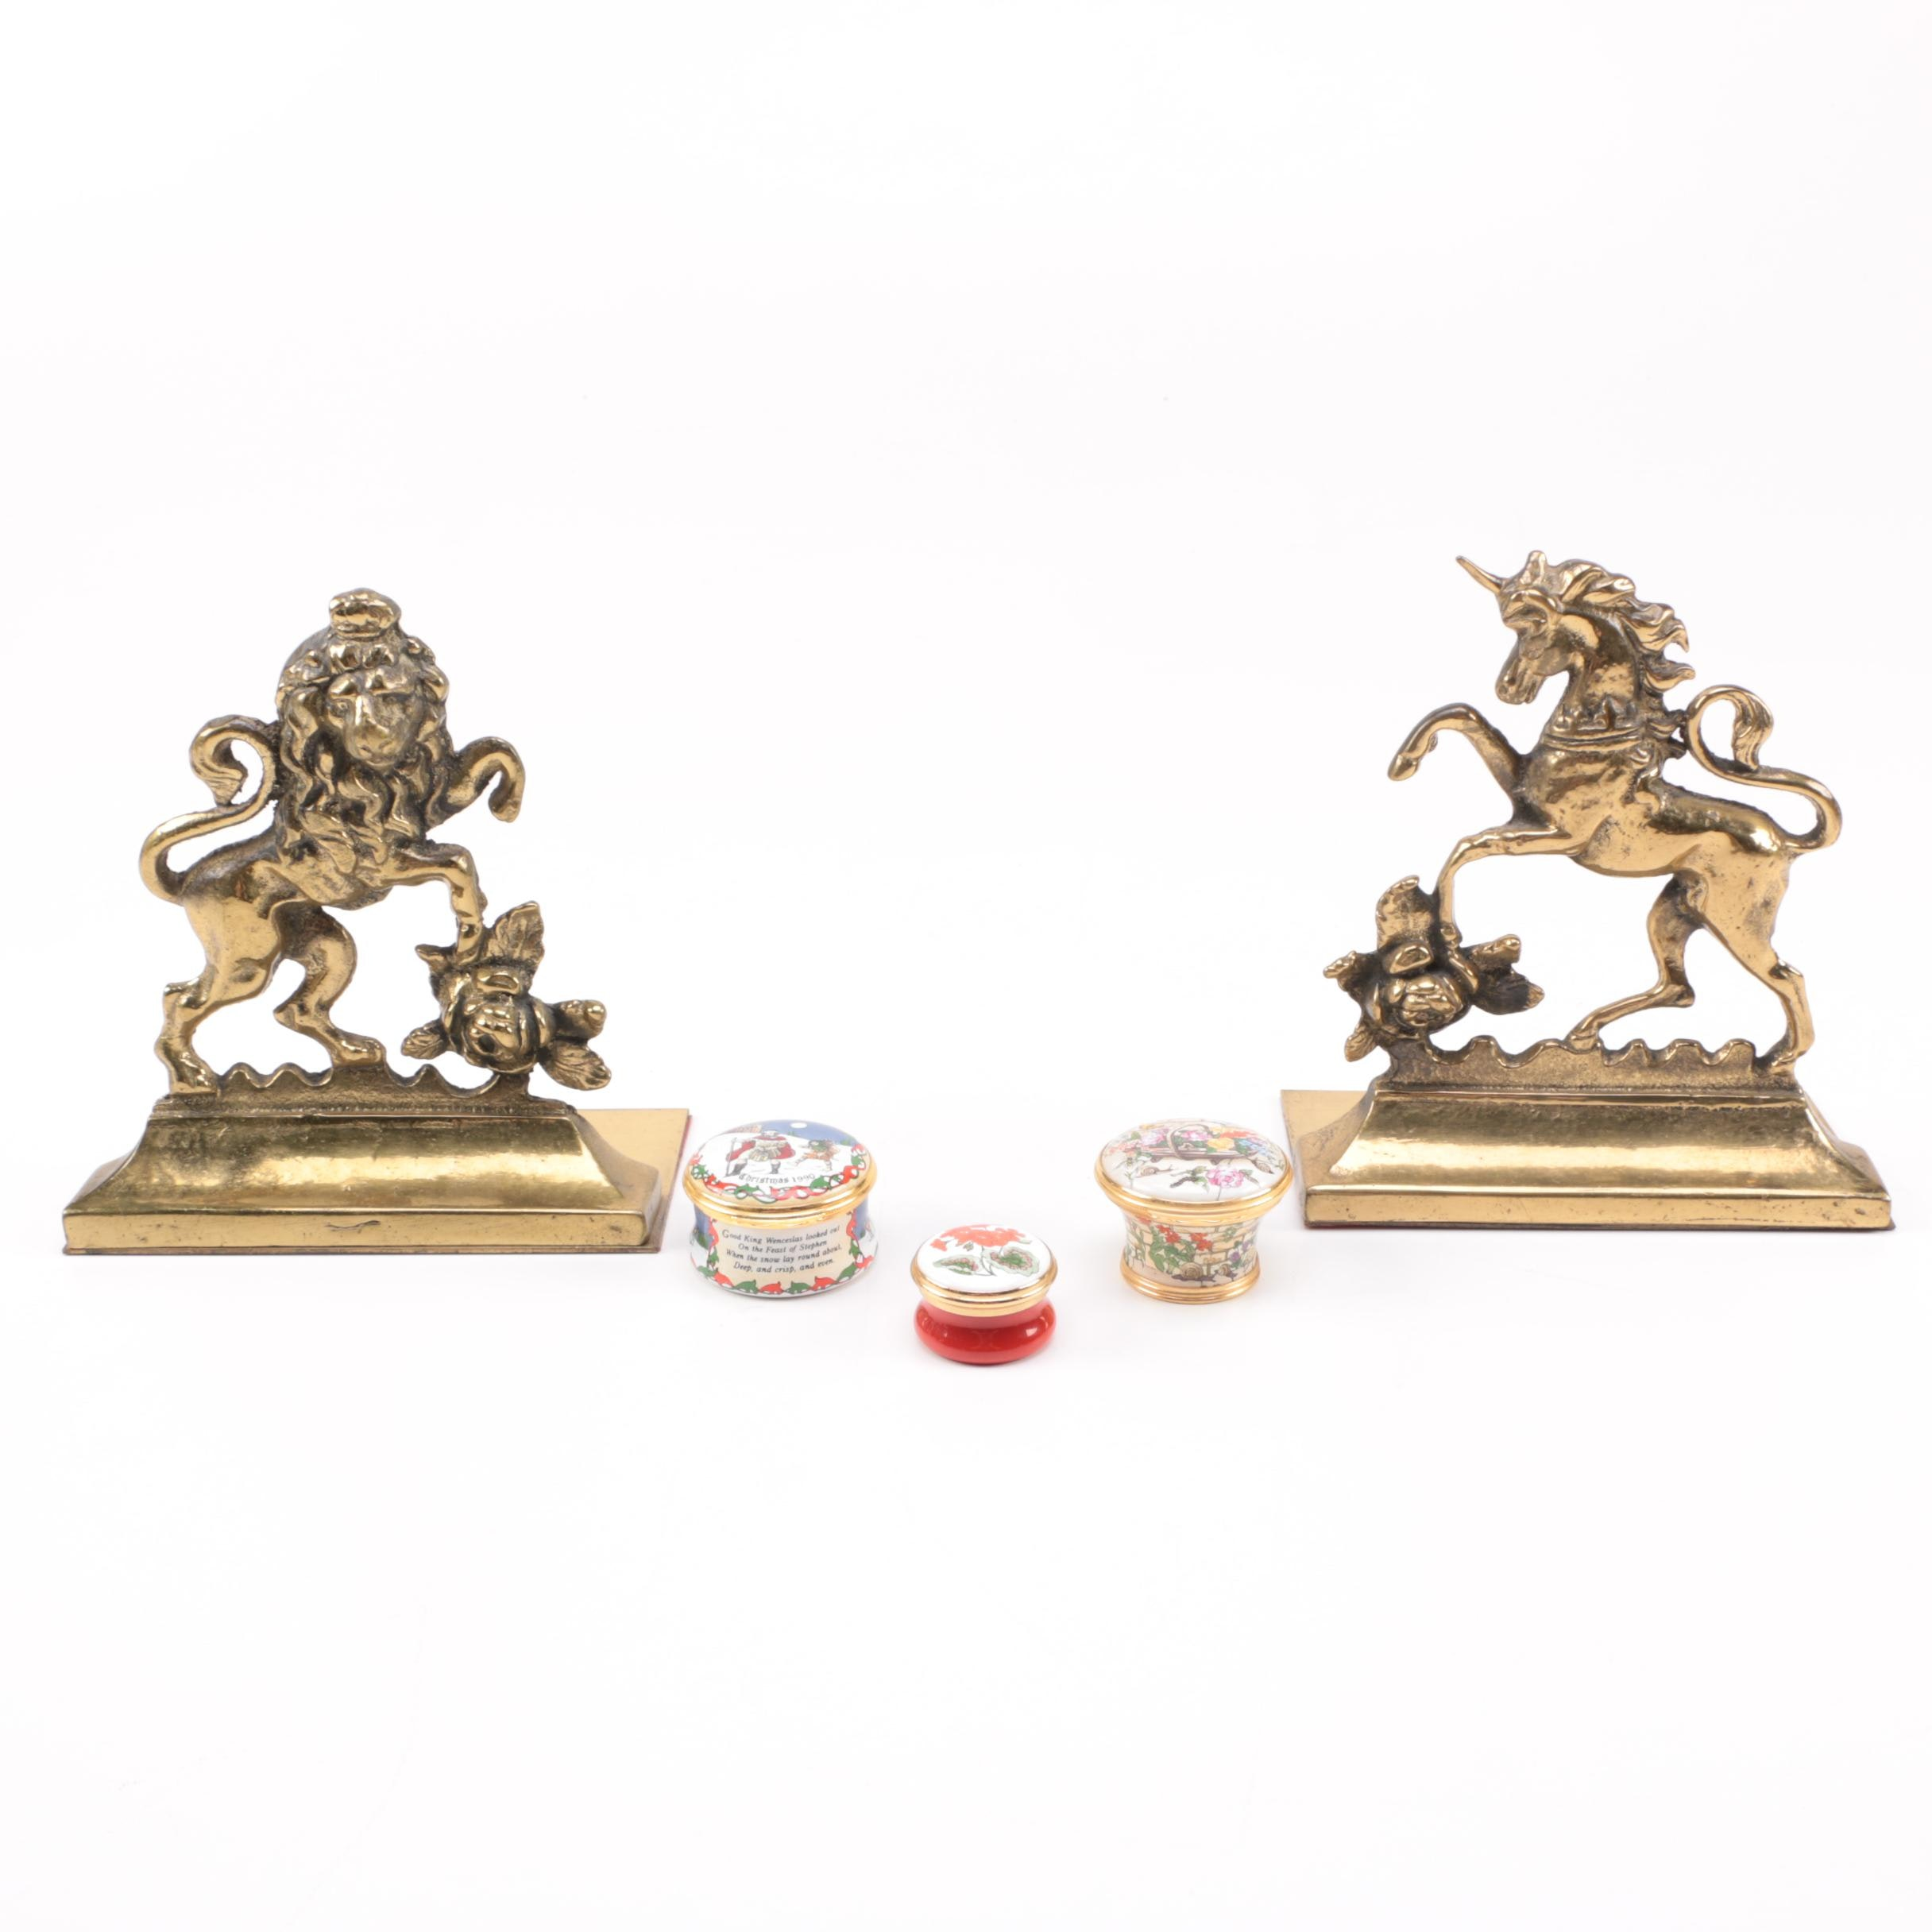 Brass Bookends with Enameled Trinket Boxes